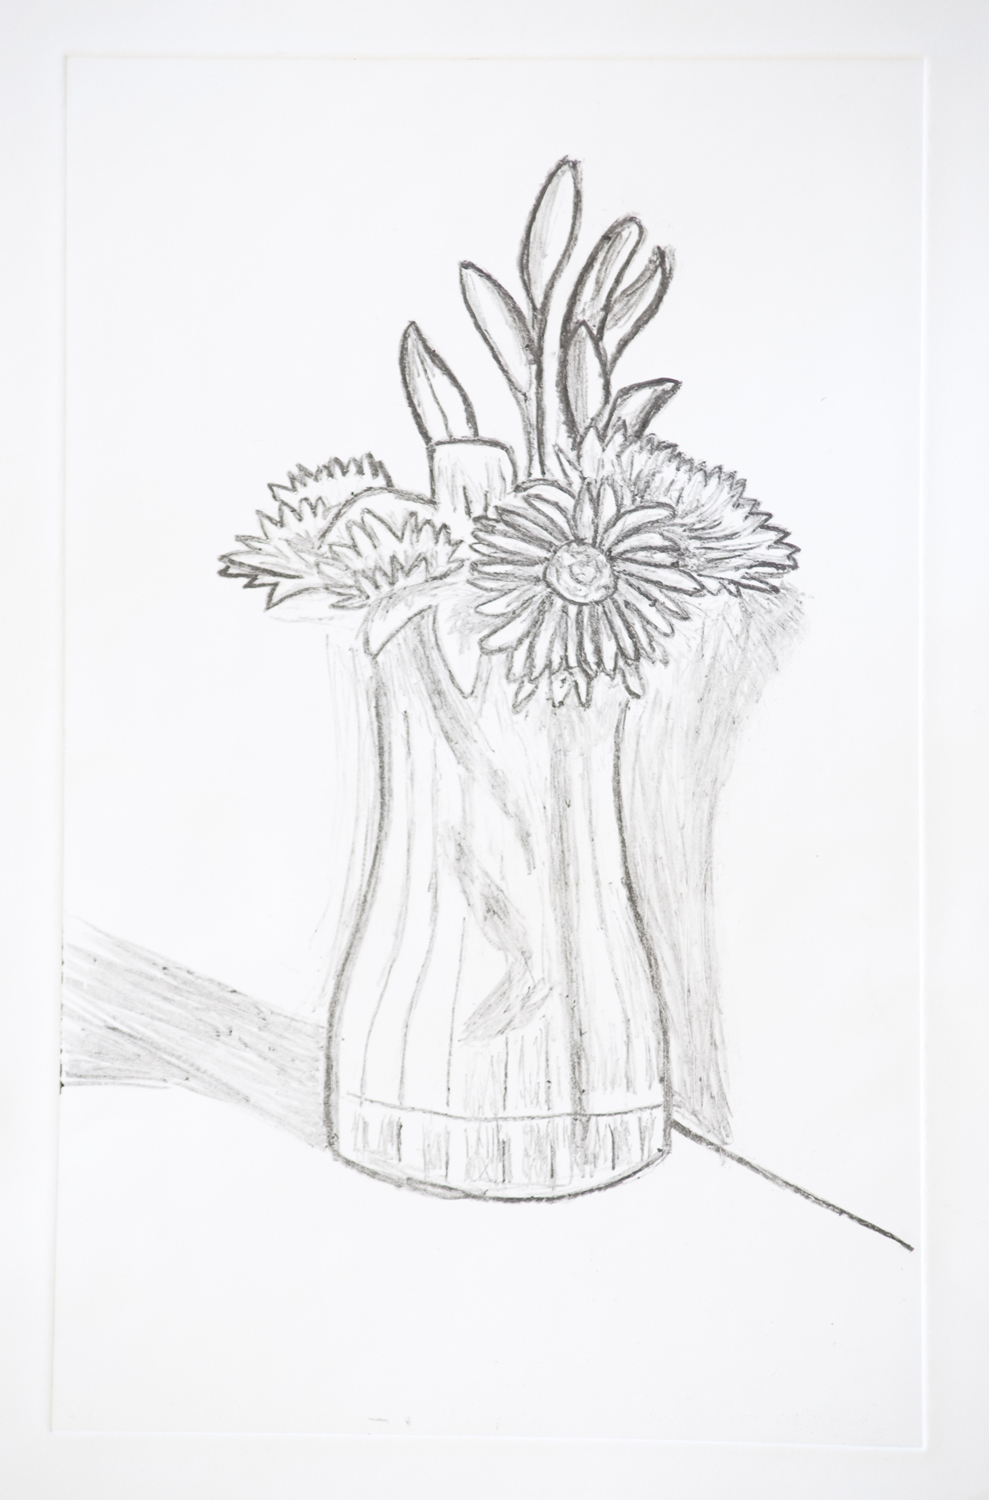 Flower vase how to draw - Flower Vase Pencil Drawing Flower Vase Print Download